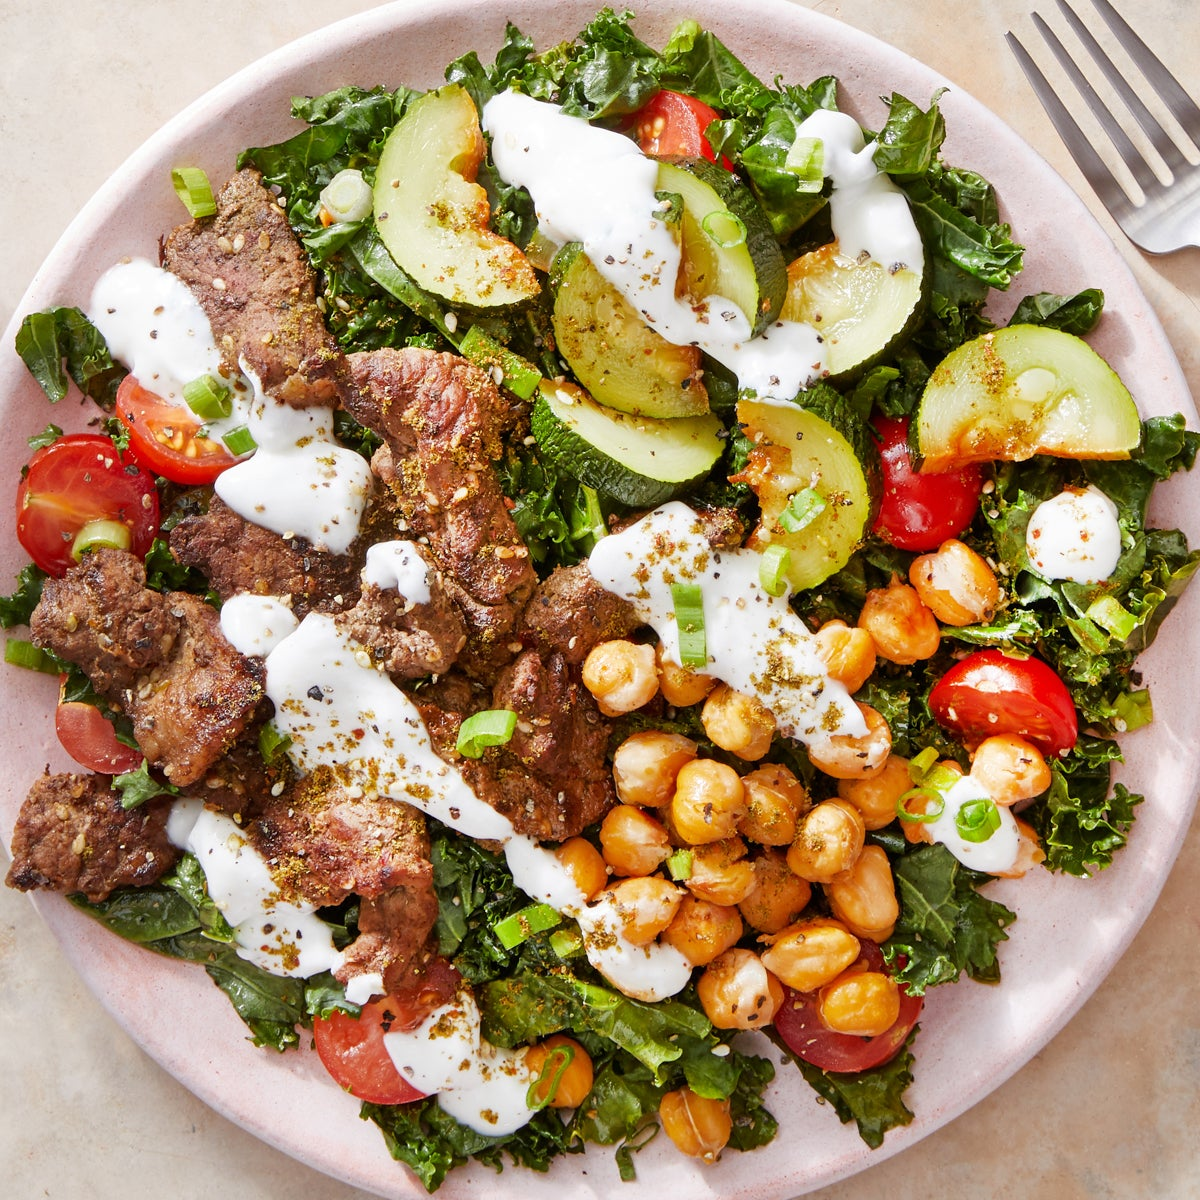 Za'atar Beef & Kale Salad with Crispy Chickpeas & Yogurt Dressing